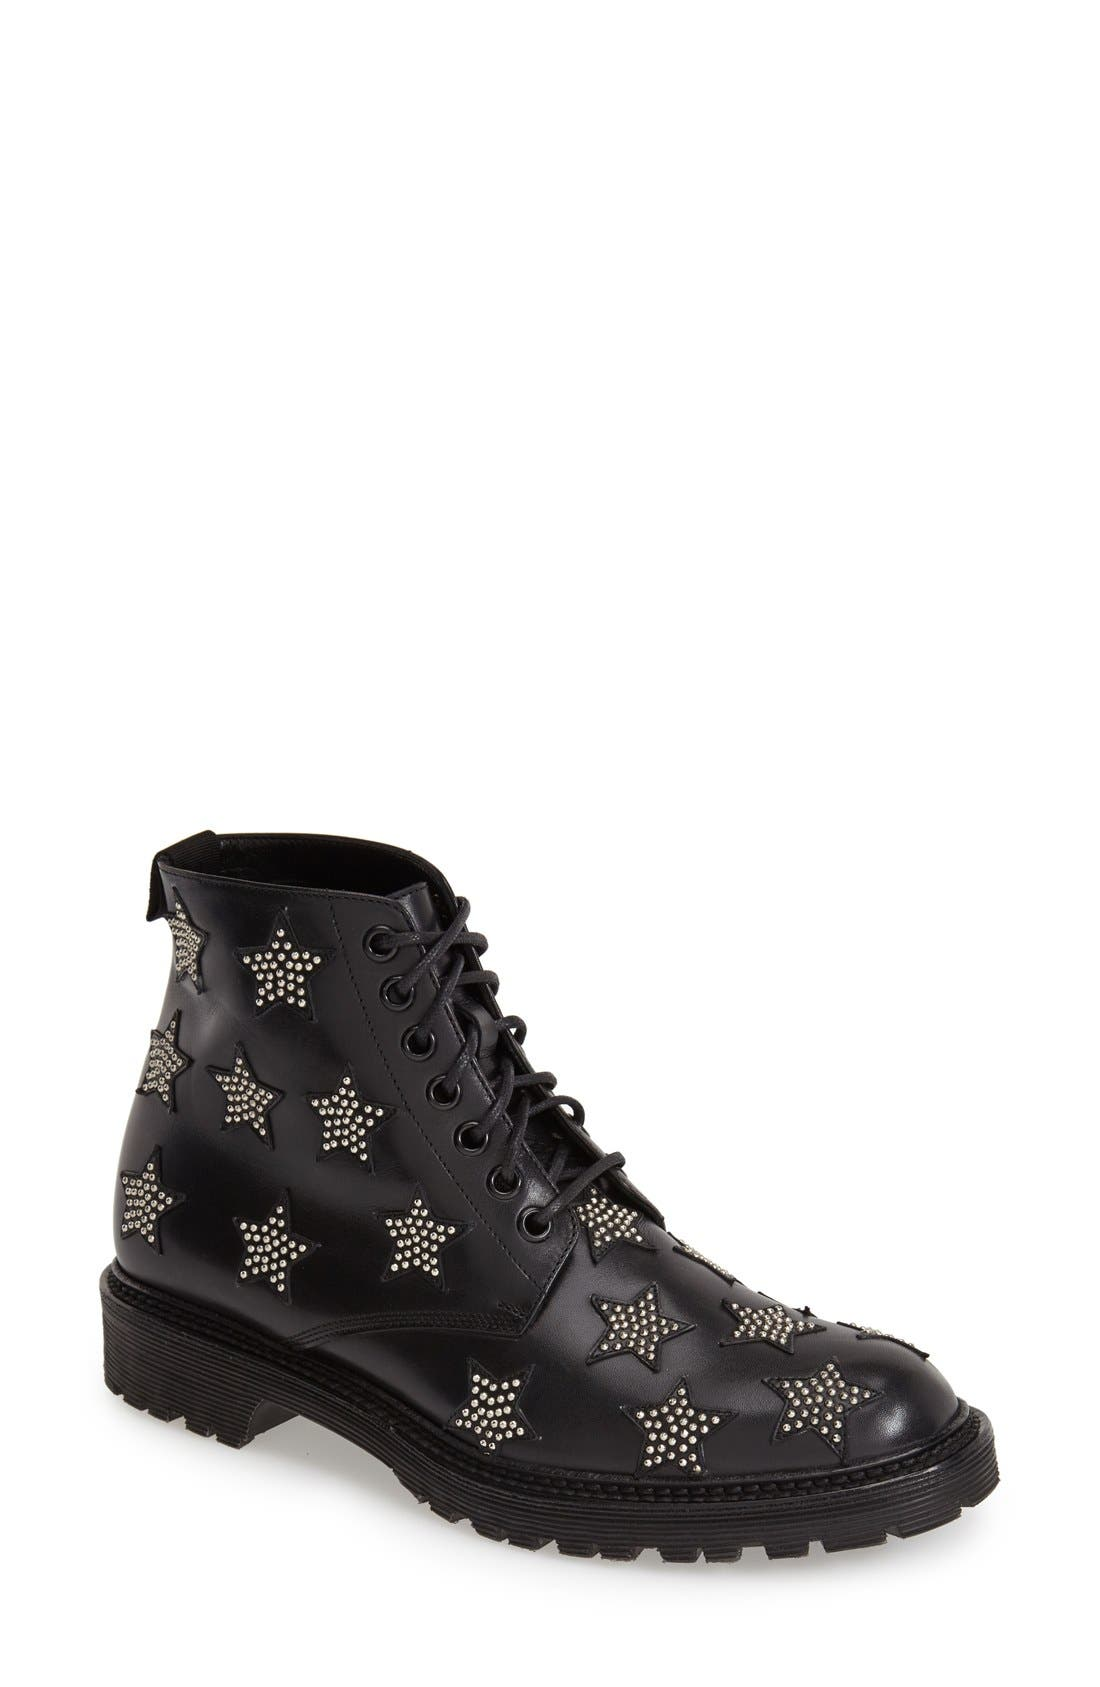 Alternate Image 1 Selected - Saint Laurent 'Army' Lace-Up Boot (Women)